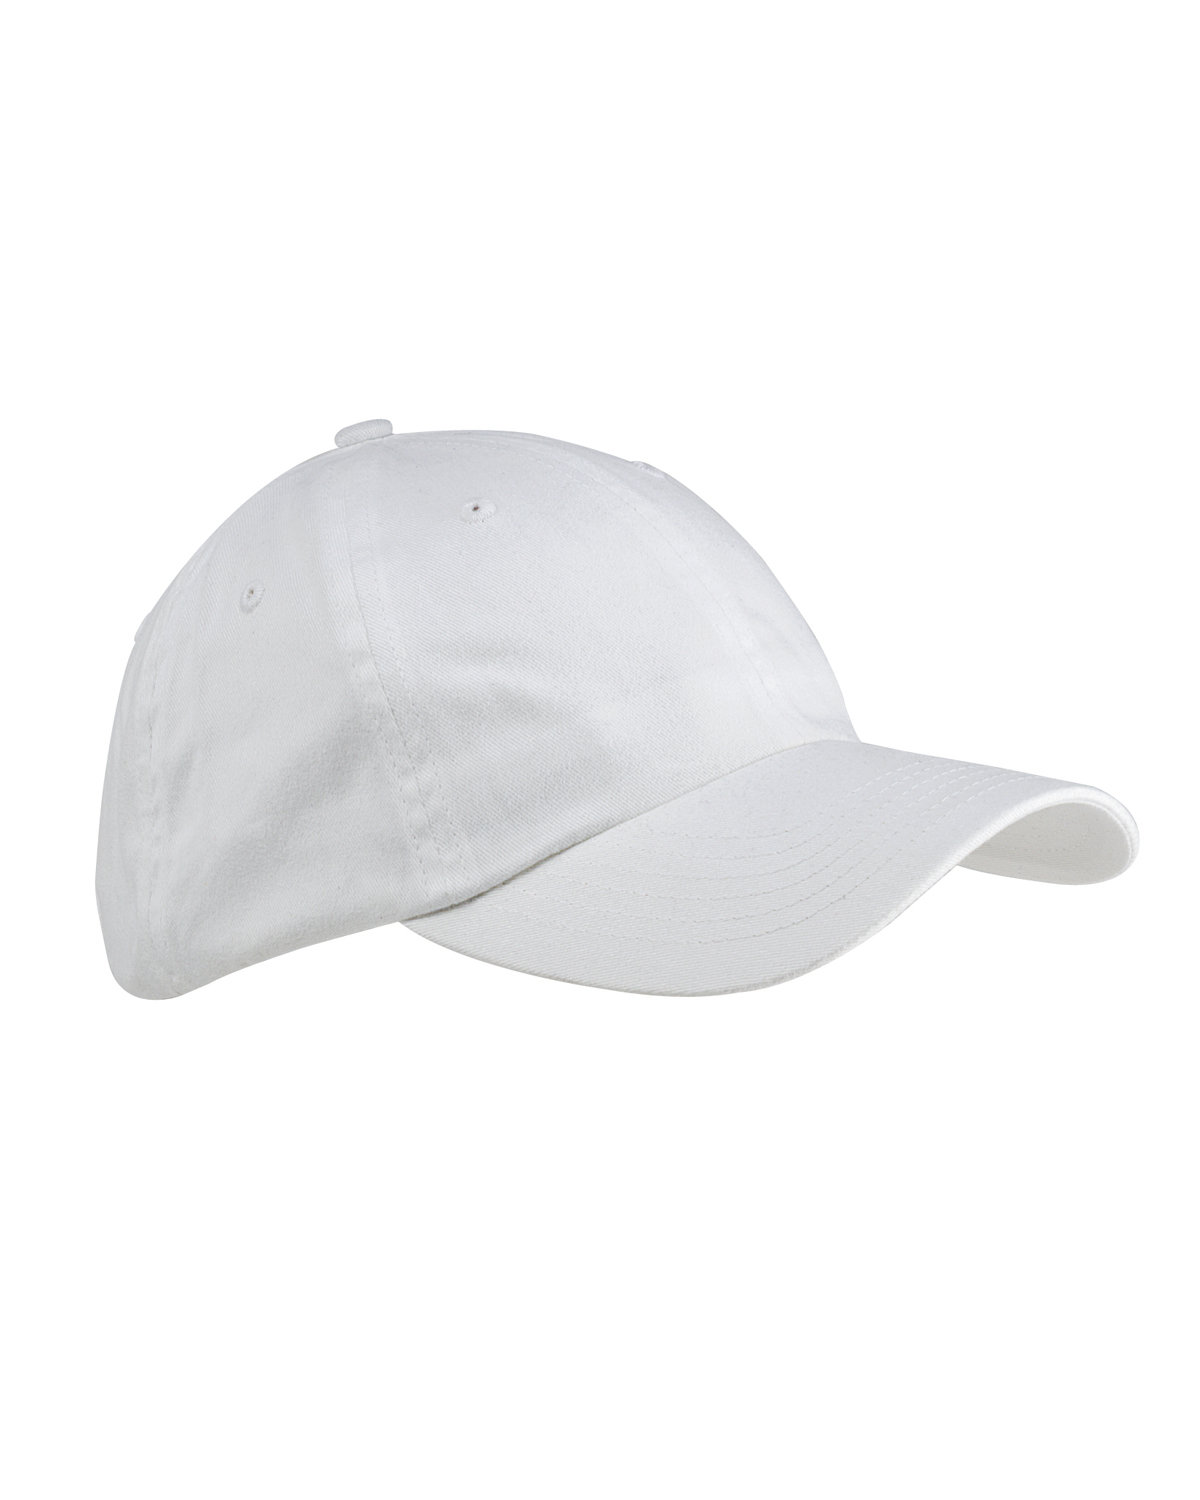 Big Accessories 6-Panel Brushed Twill Unstructured Cap WHITE